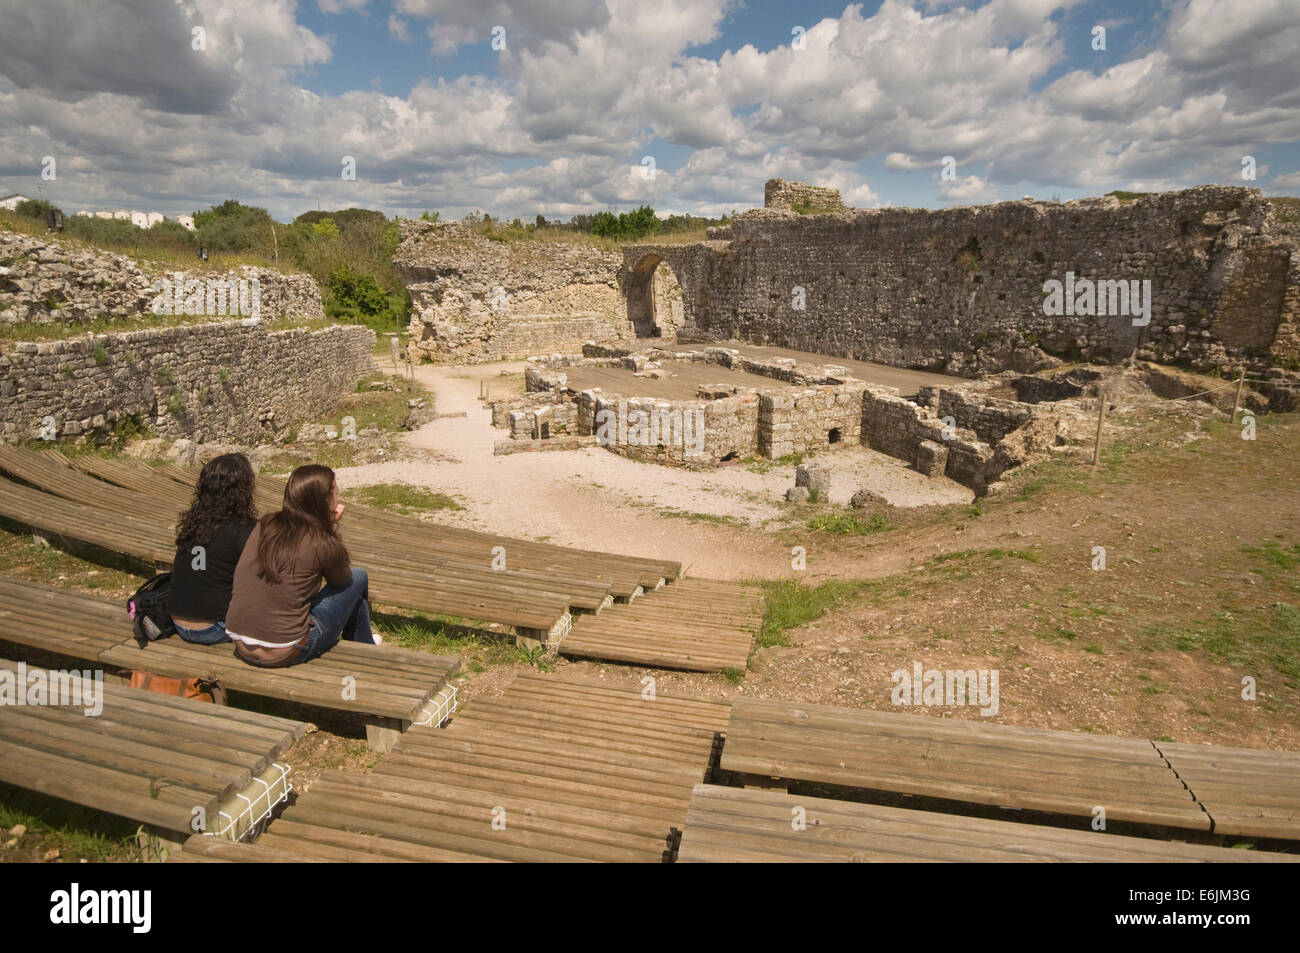 Europe portugal conimbriga 1st century ad roman site baths of europe portugal conimbriga 1st century ad roman site baths of the aqueduct 2nd century ad with two young women sat on ben publicscrutiny Image collections